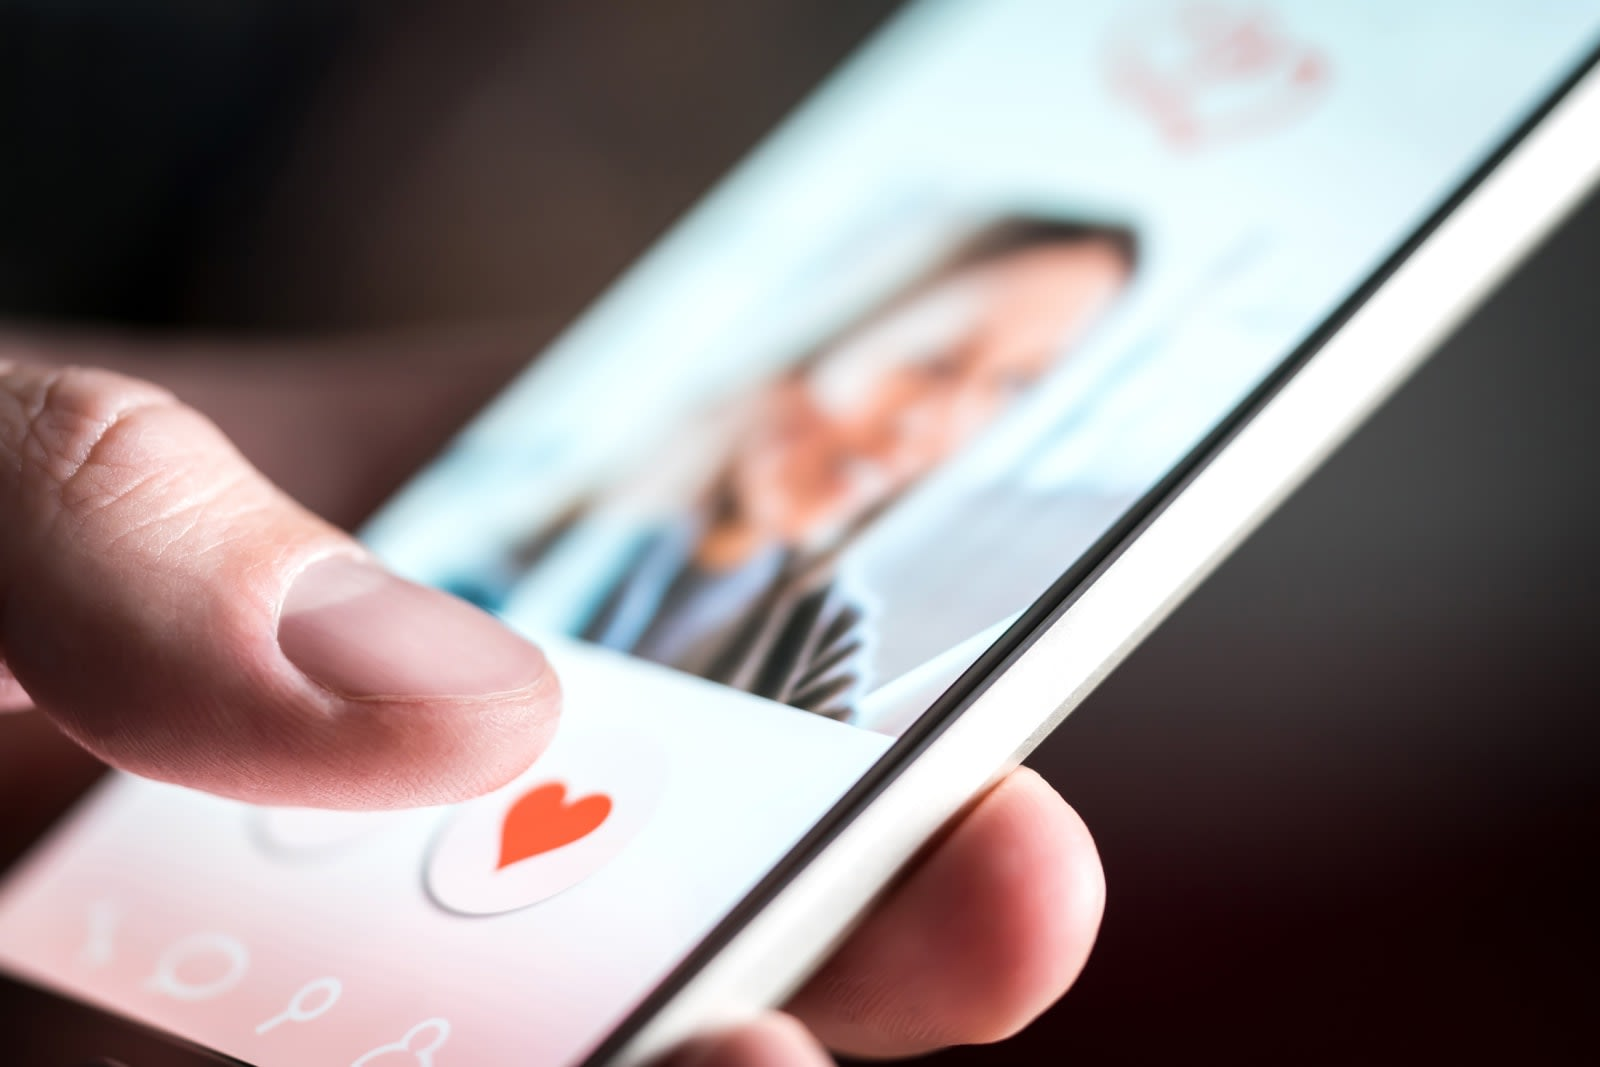 App stores pull dating apps after FTC warning about underage